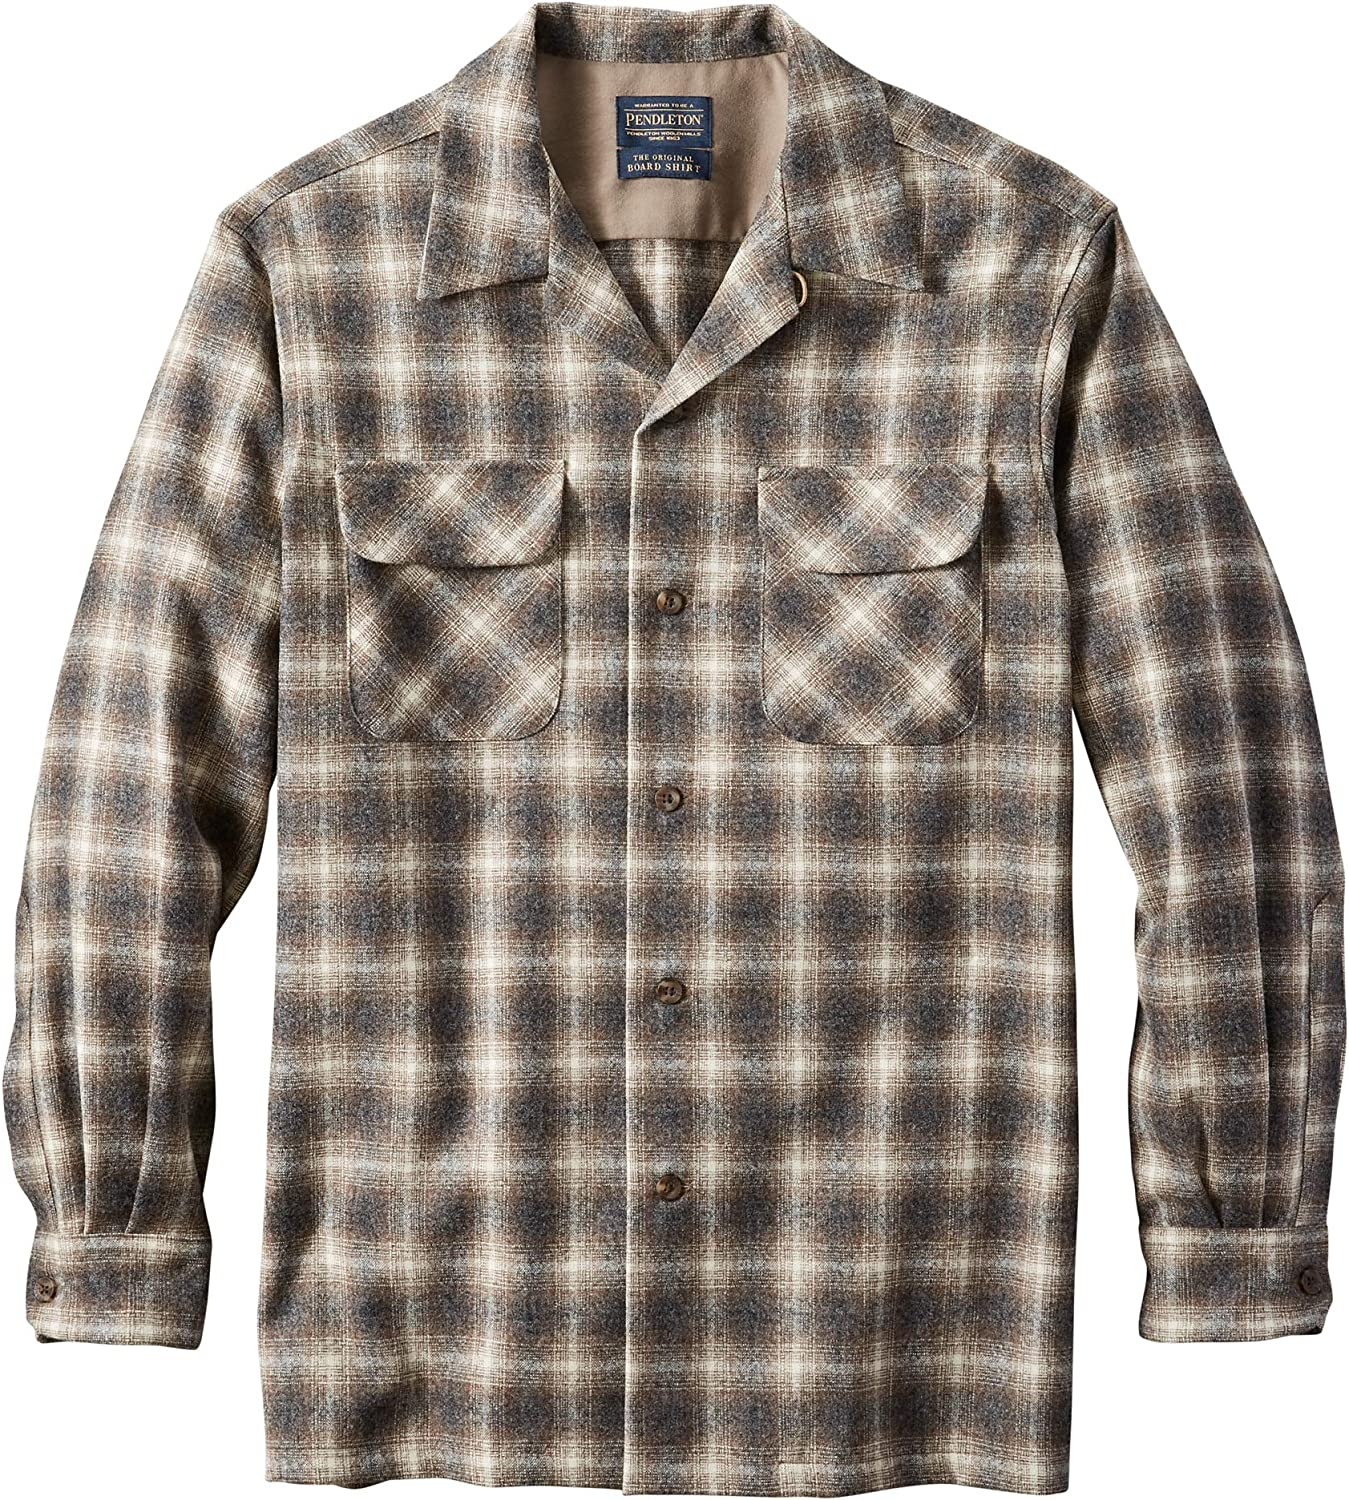 Mens Vintage Shirts – Casual, Dress, T-shirts, Polos Pendleton Mens Long Sleeve Classic-fit Board Shirt $149.00 AT vintagedancer.com